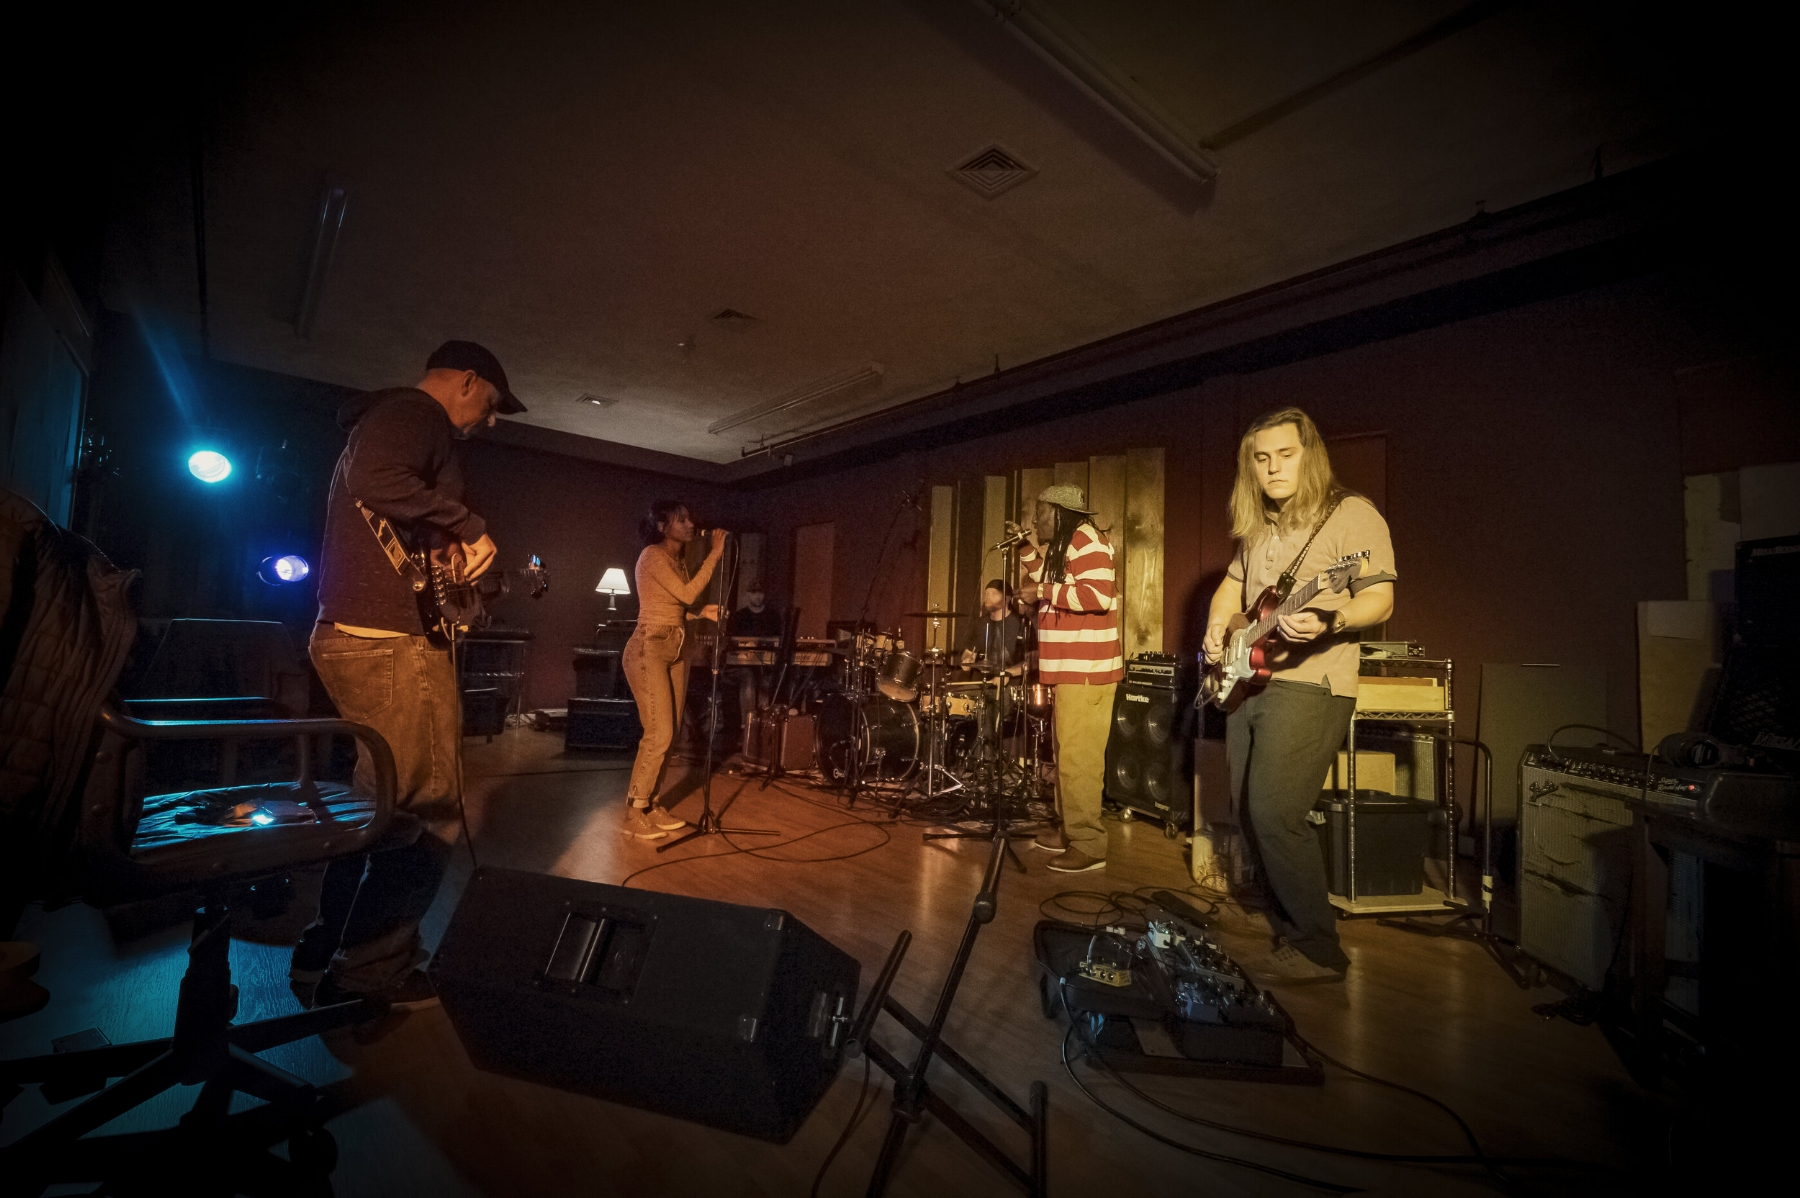 Pardee and his band in rehearsal. (Photograph by Steve Marsel)